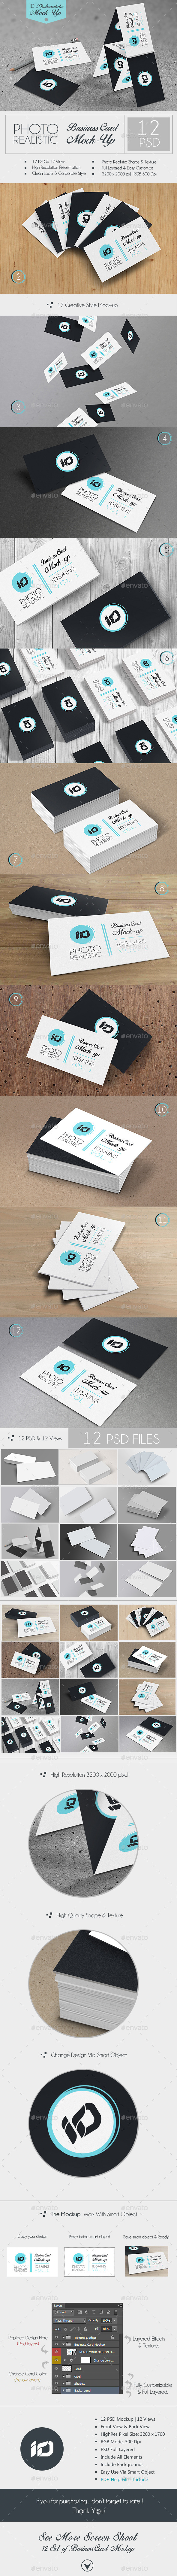 GraphicRiver ID Business Card Mock-Up Photorealistic 9027858